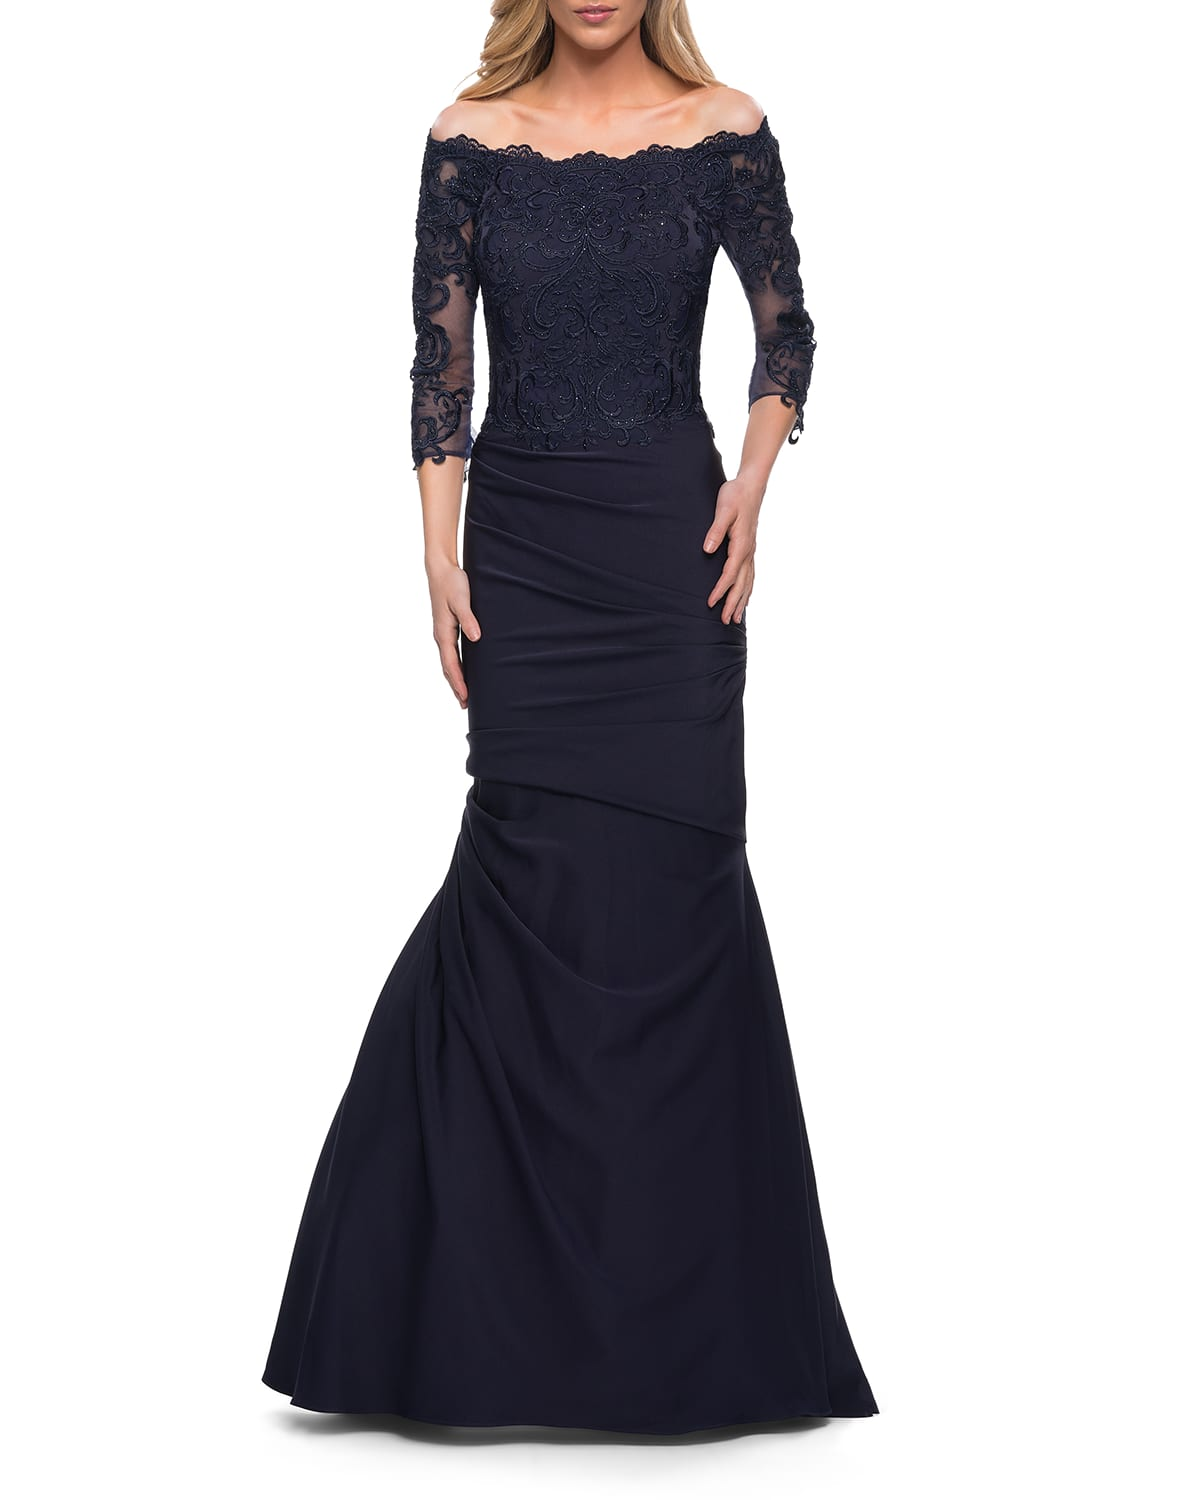 Gathered Lace Mermaid Gown with Jersey Skirt